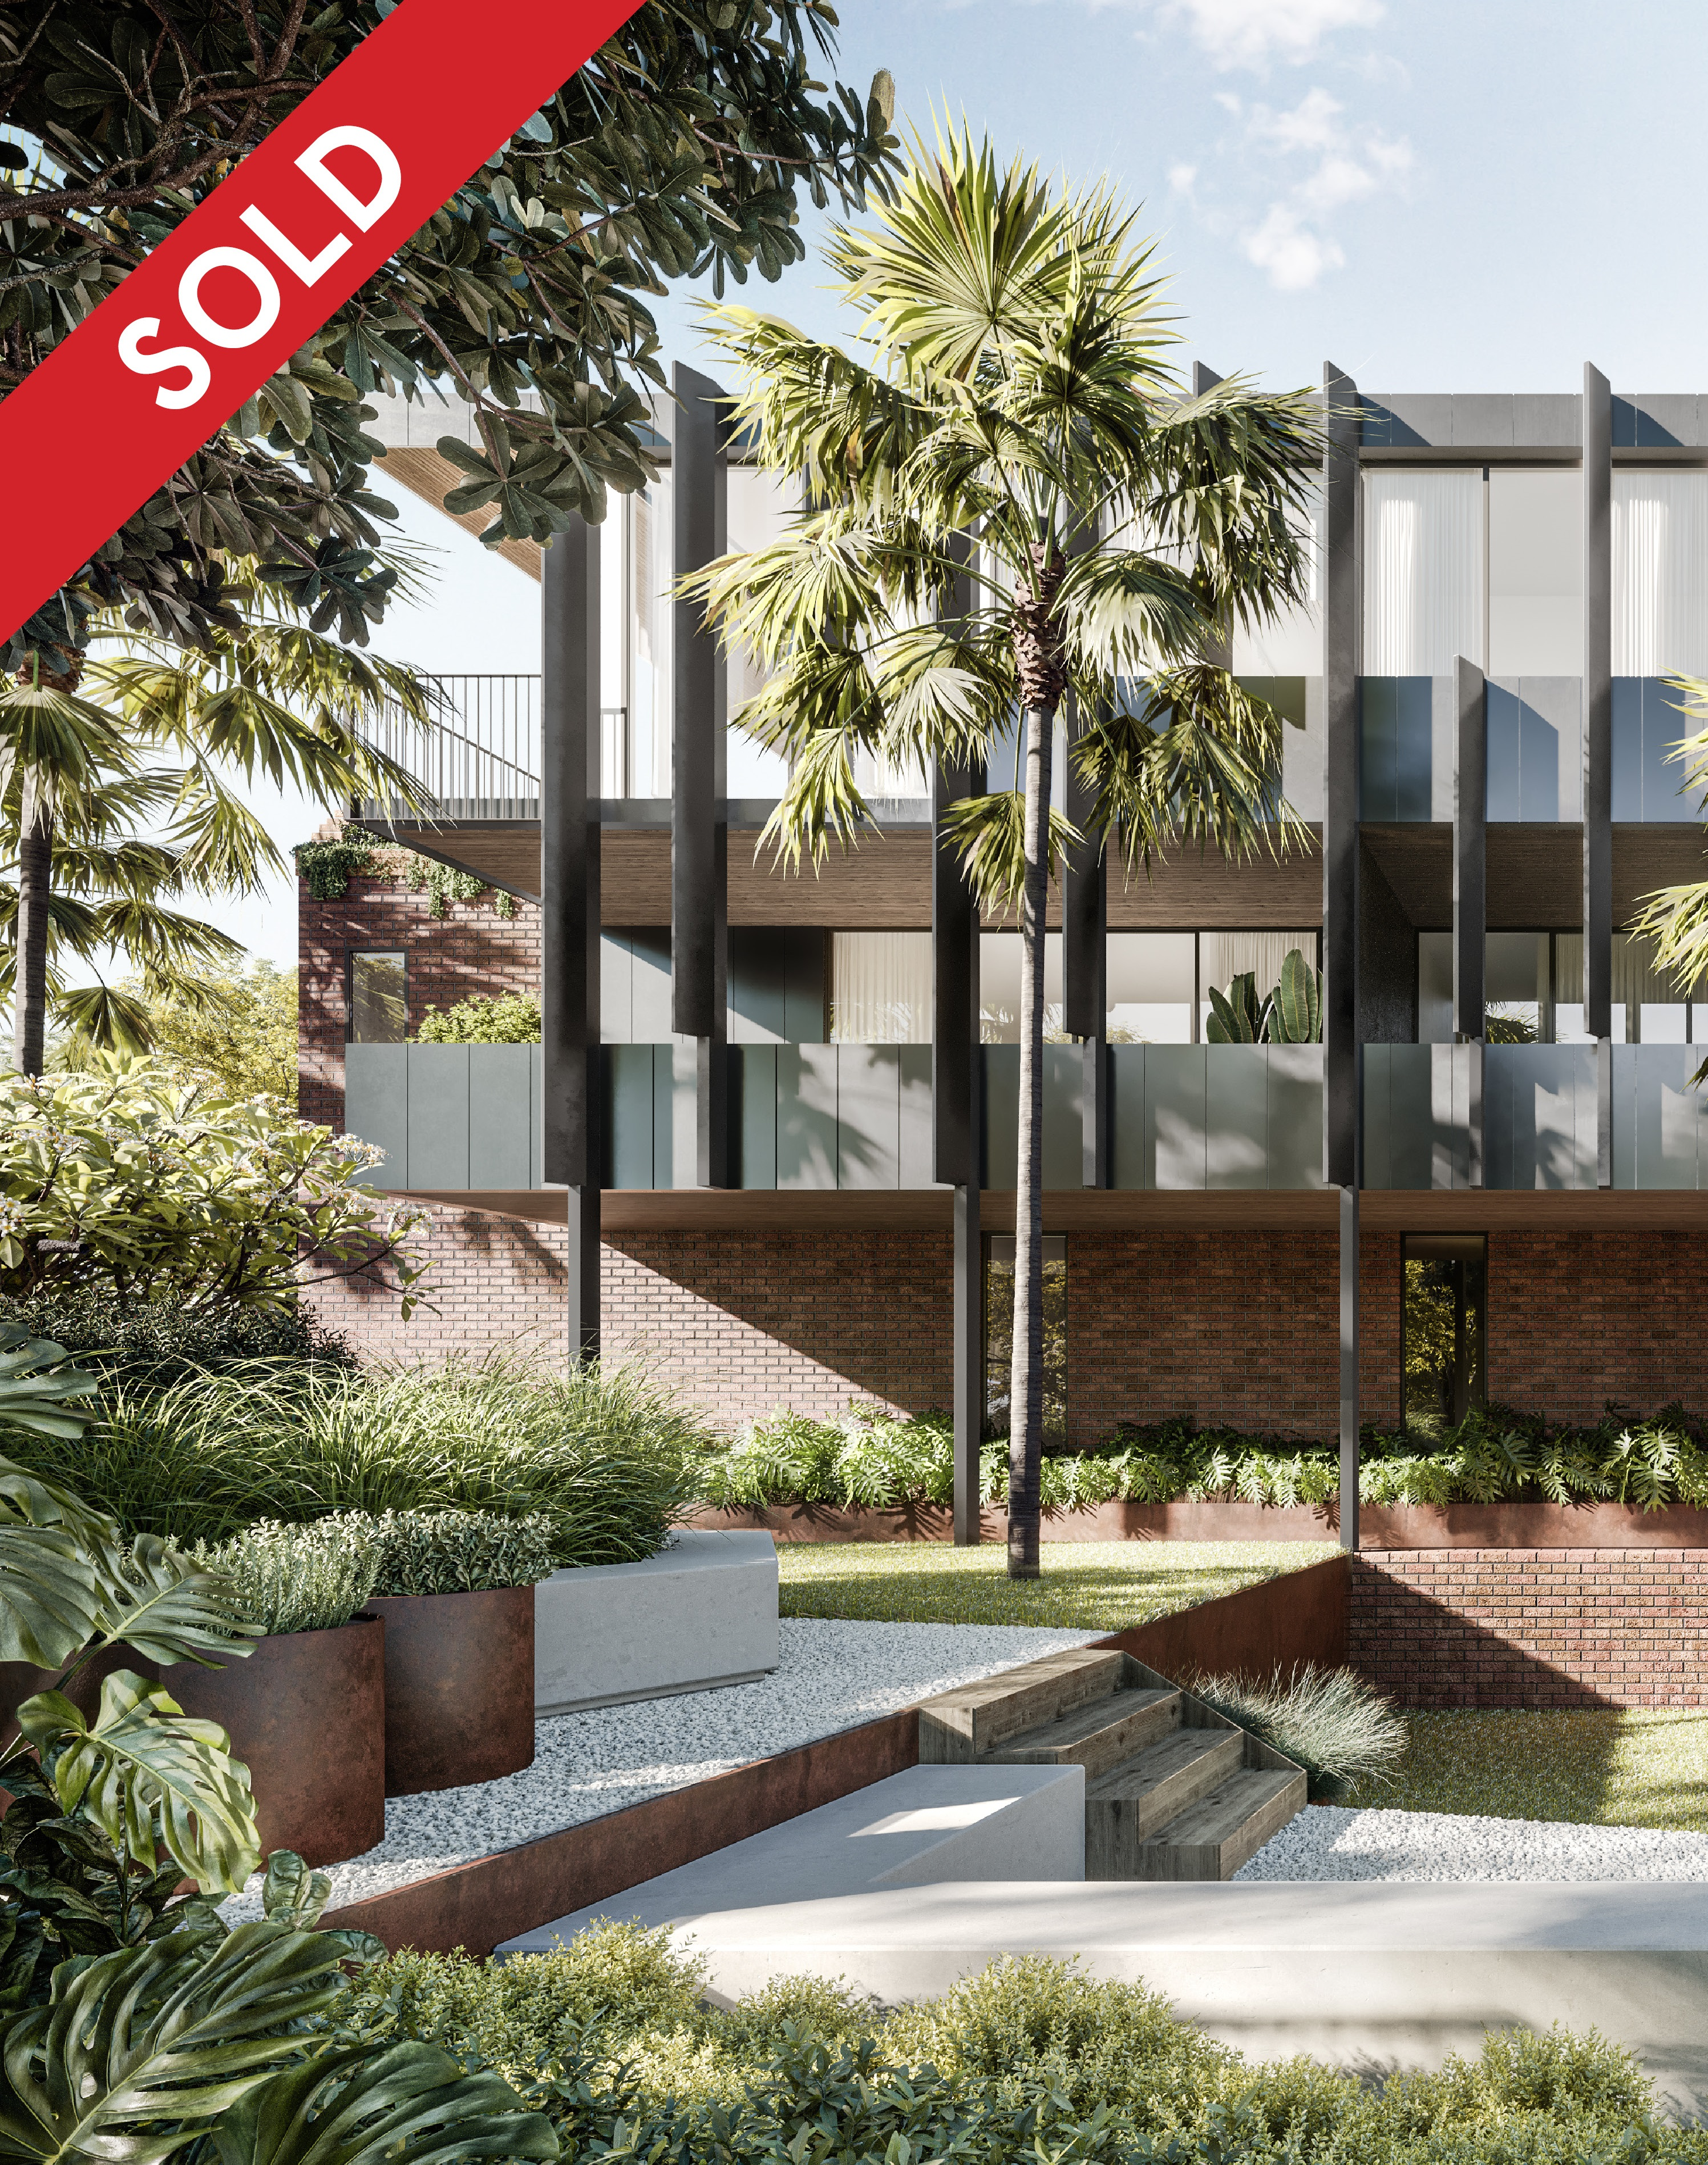 The Anden Coogee – SOLD OUT!